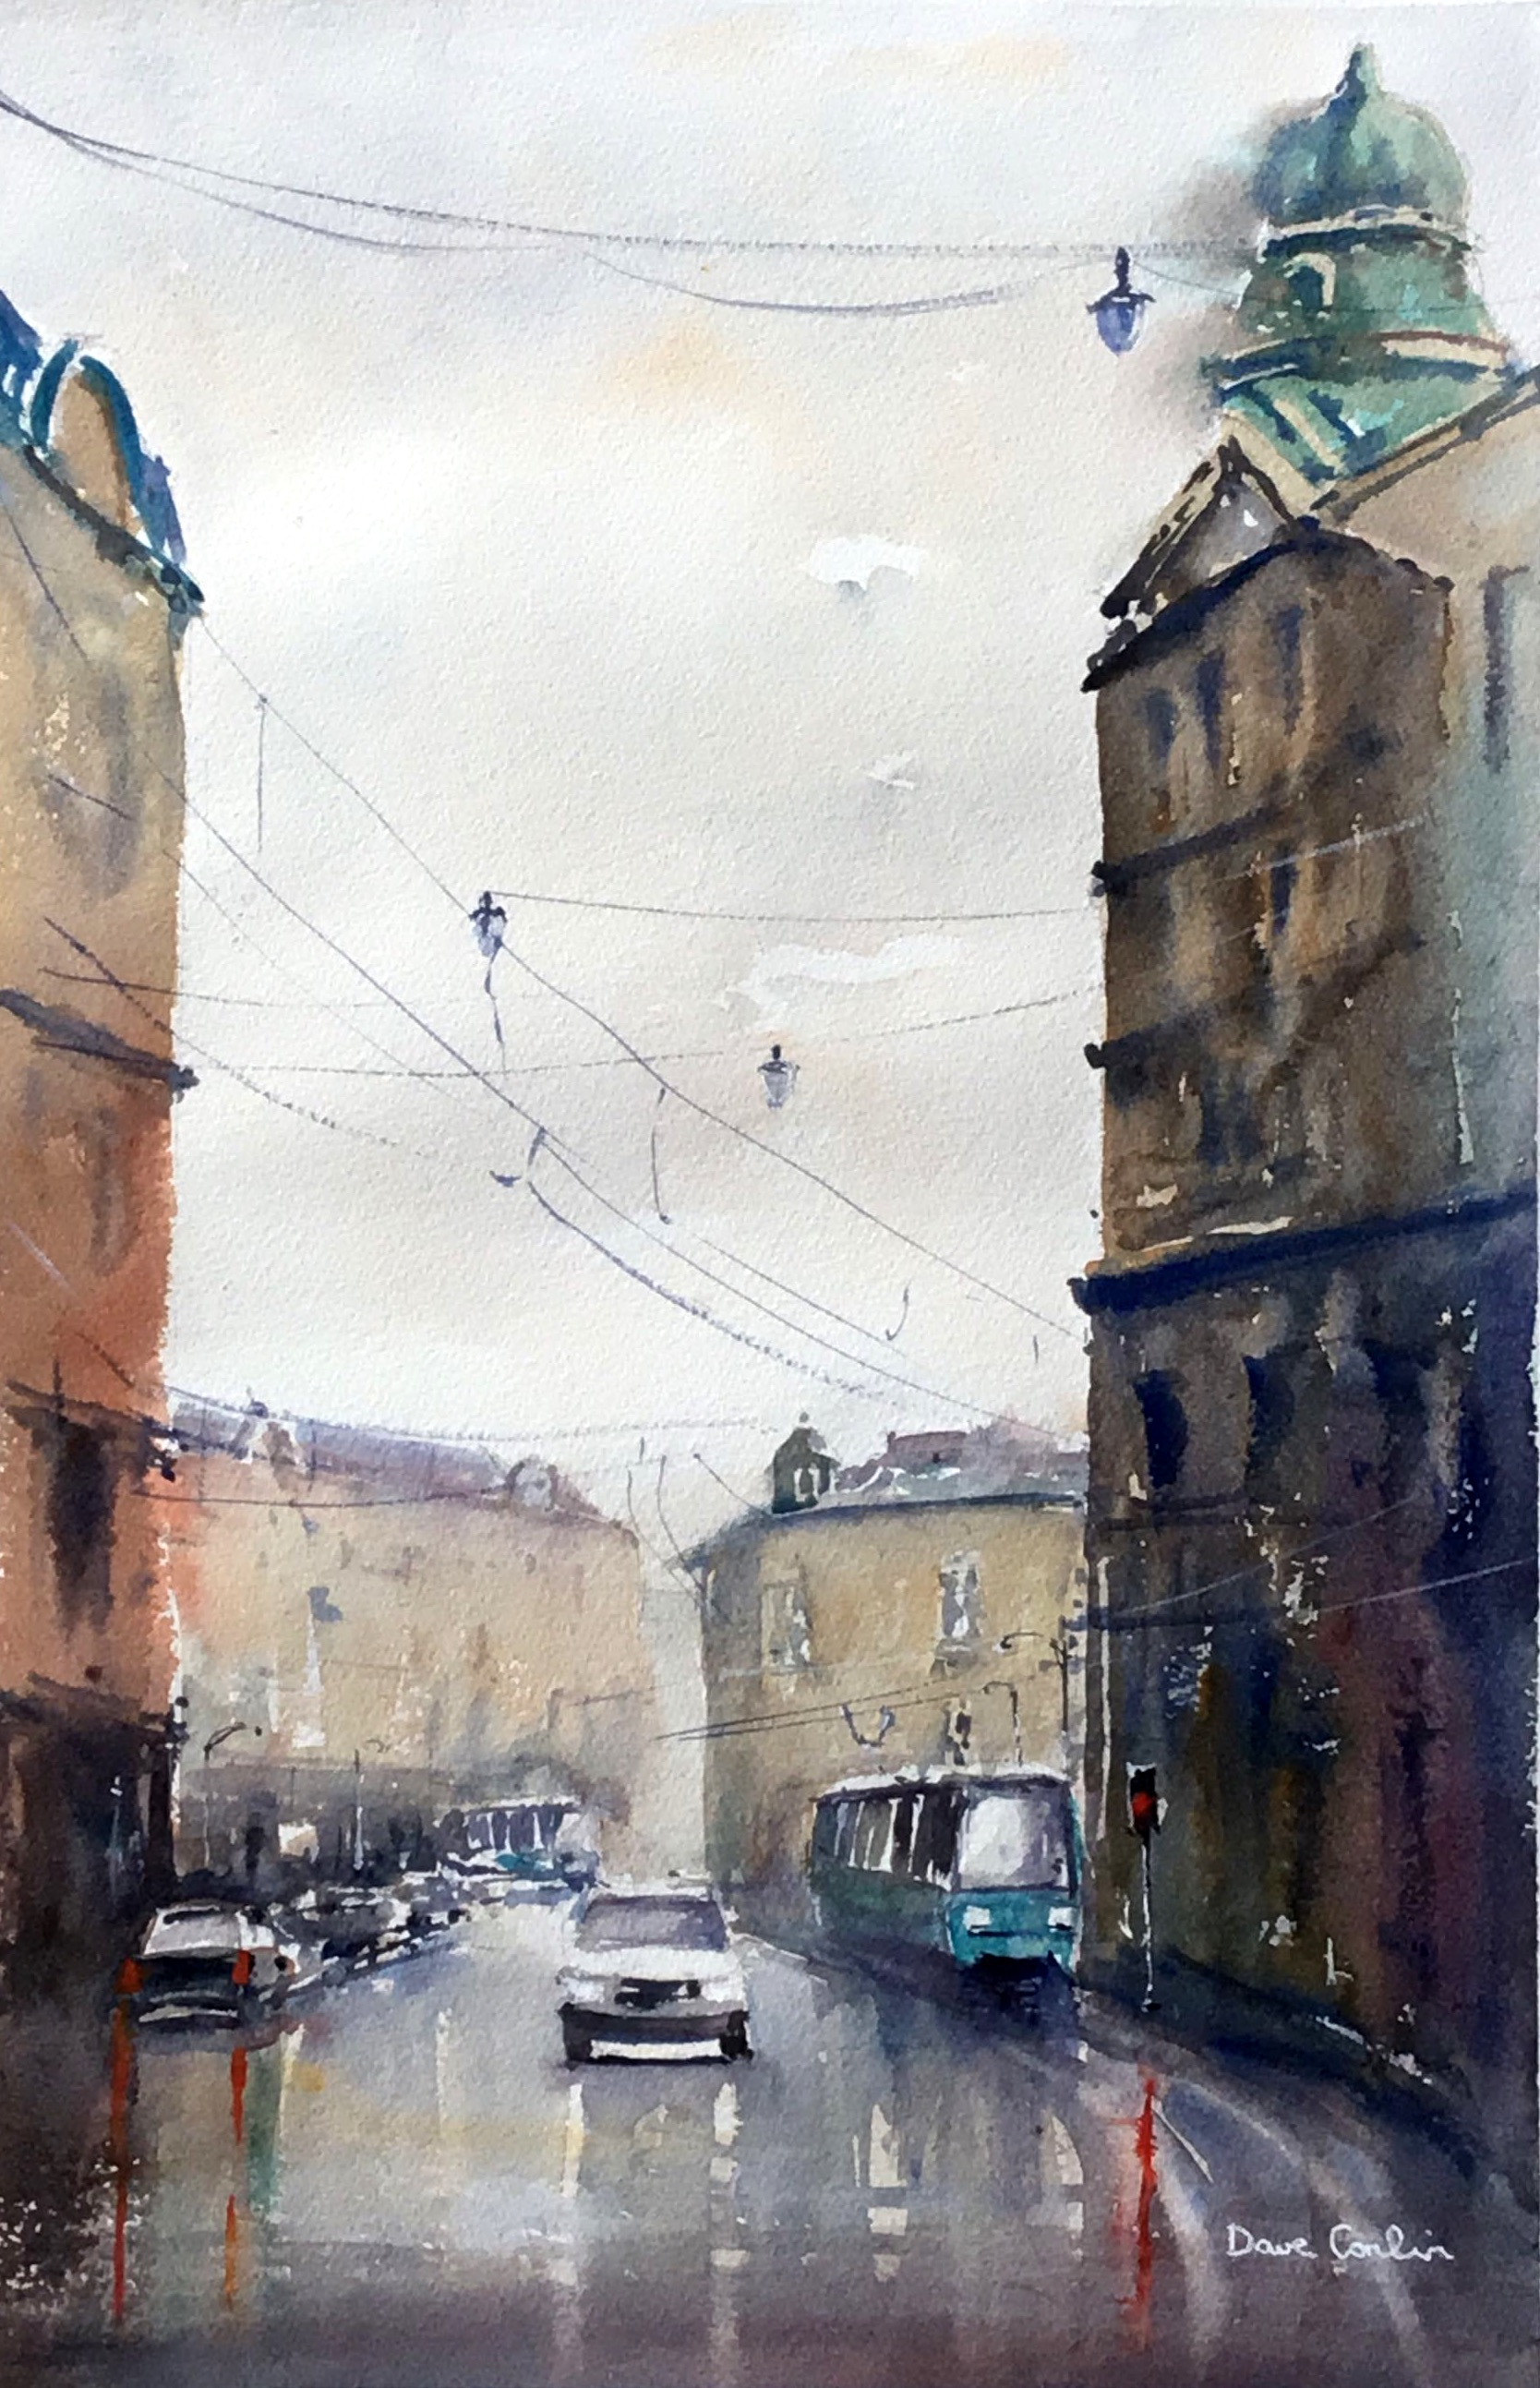 A wet morning in Krakow